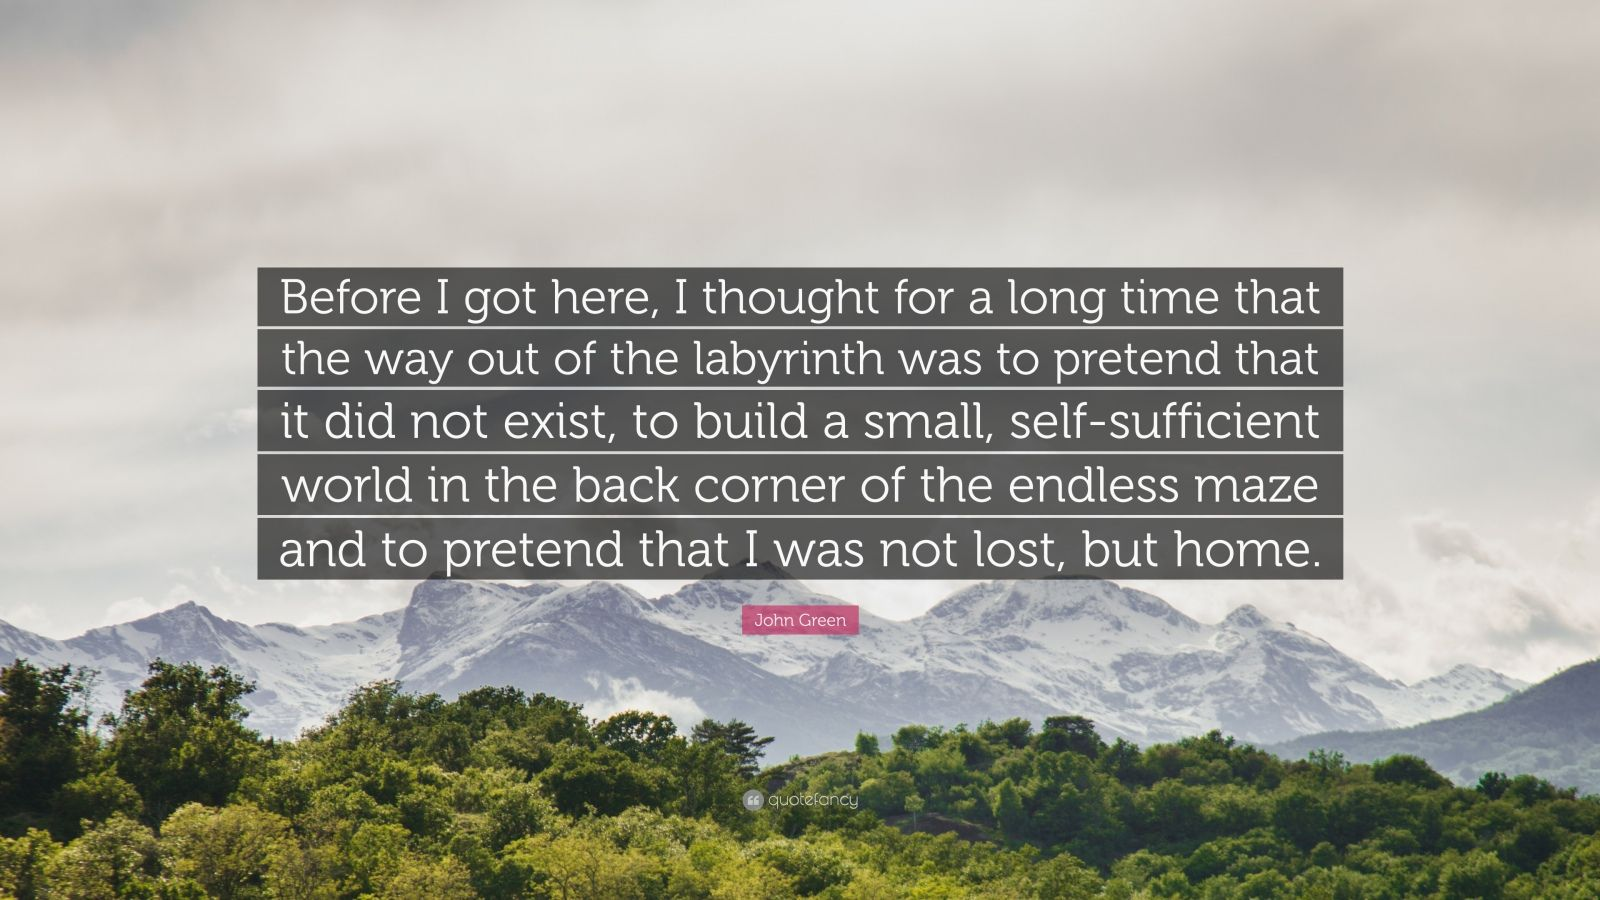 """John Green Quote: """"Before I got here, I thought for a long time that the way out of the labyrinth was to pretend that it did not exist, to build a small, self-sufficient world in the back corner of the endless maze and to pretend that I was not lost, but home."""""""